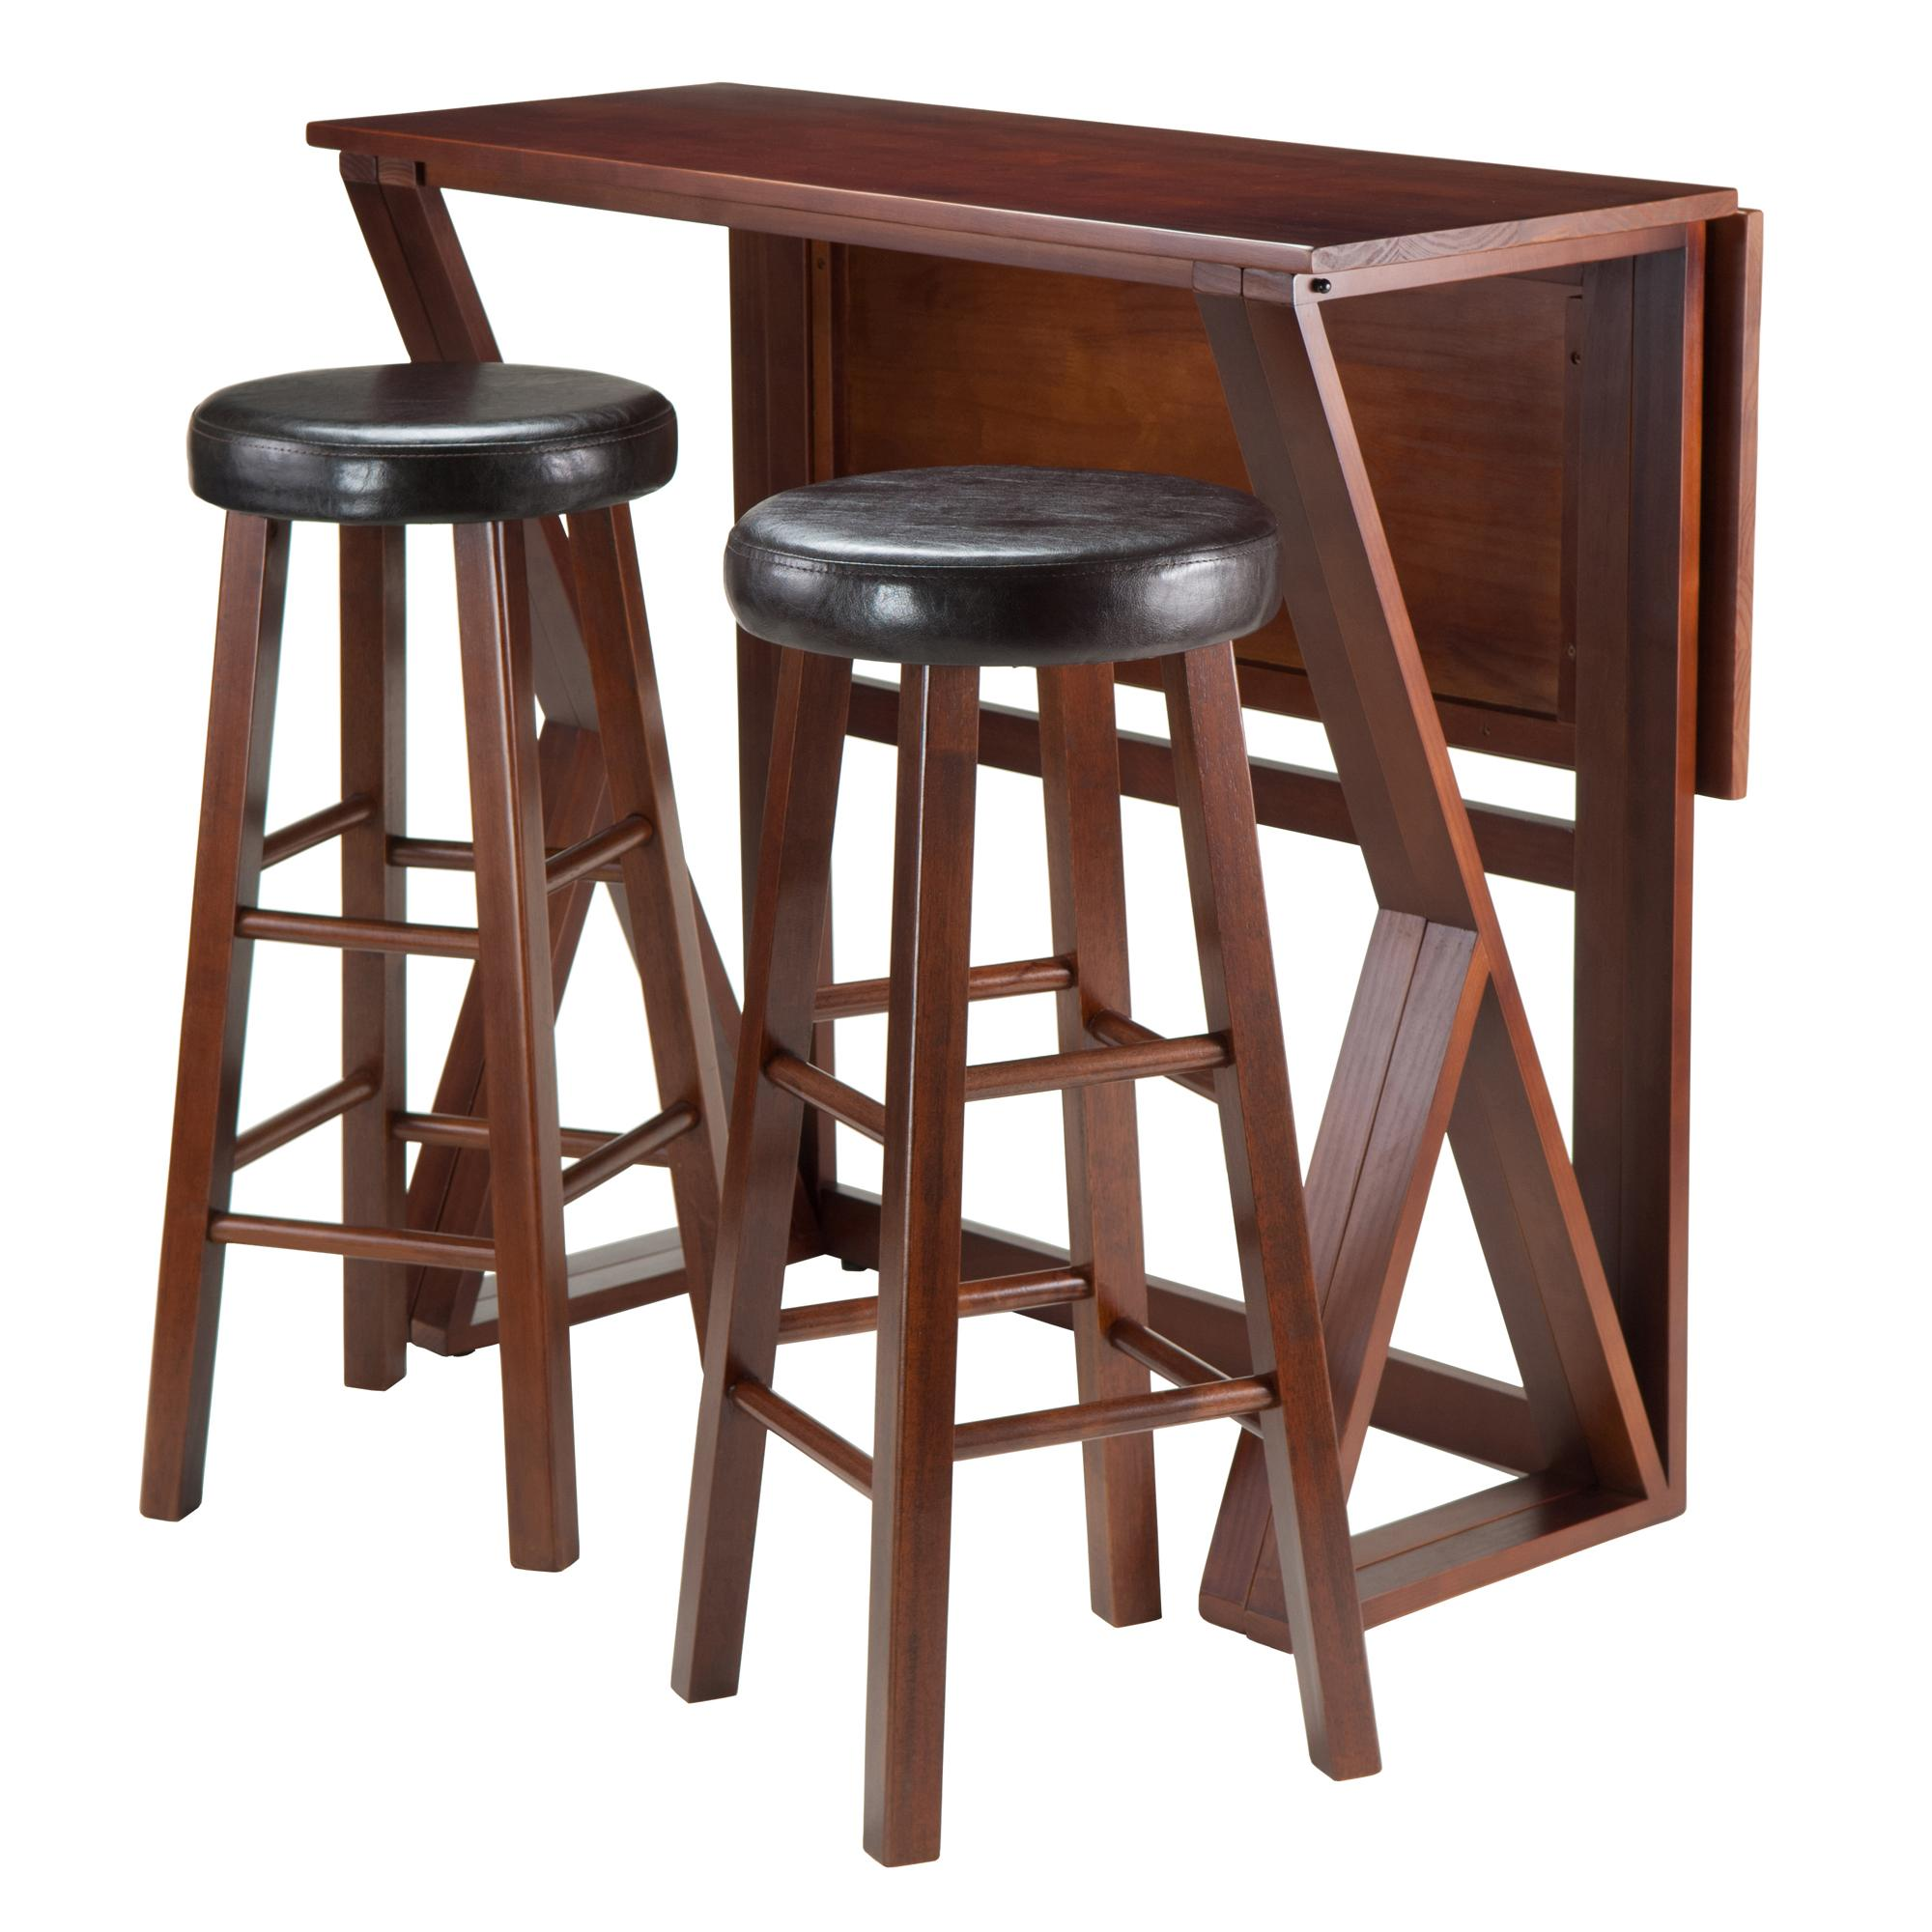 Inspirational Round Bar Table and Stools